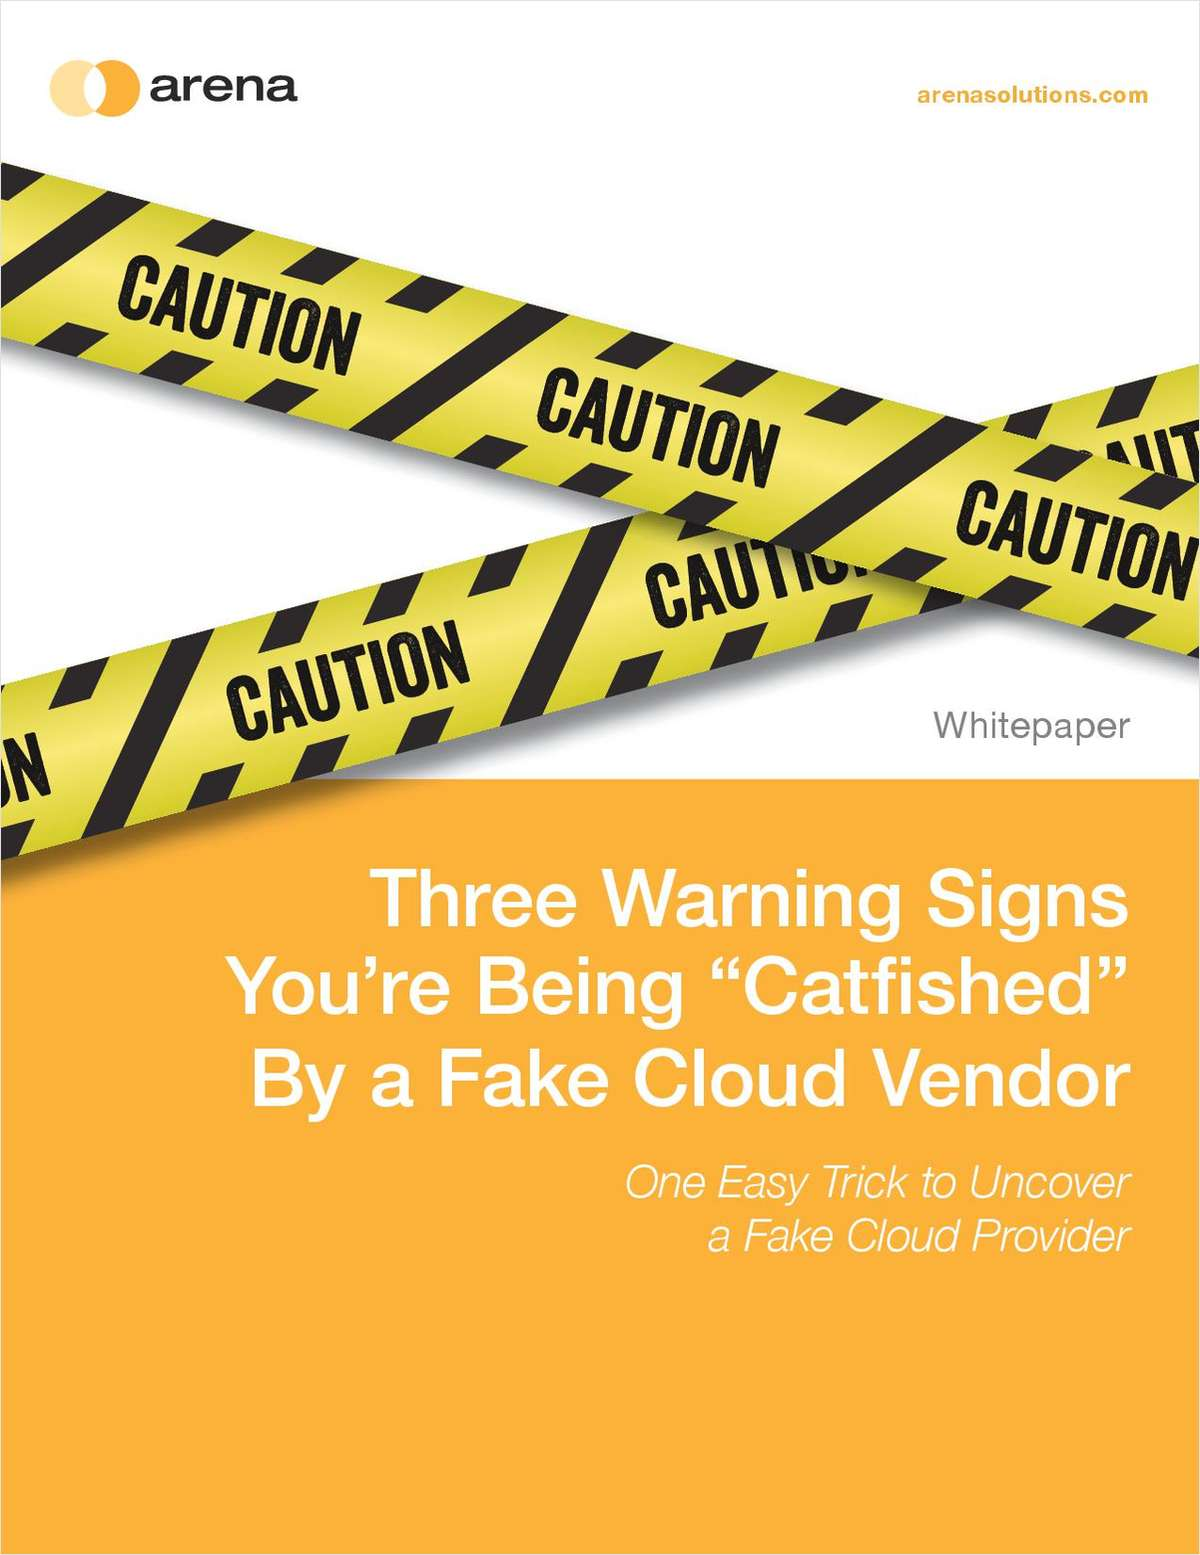 Three Warning Signs You're Being 'Catfished' By a Fake Cloud Vendor